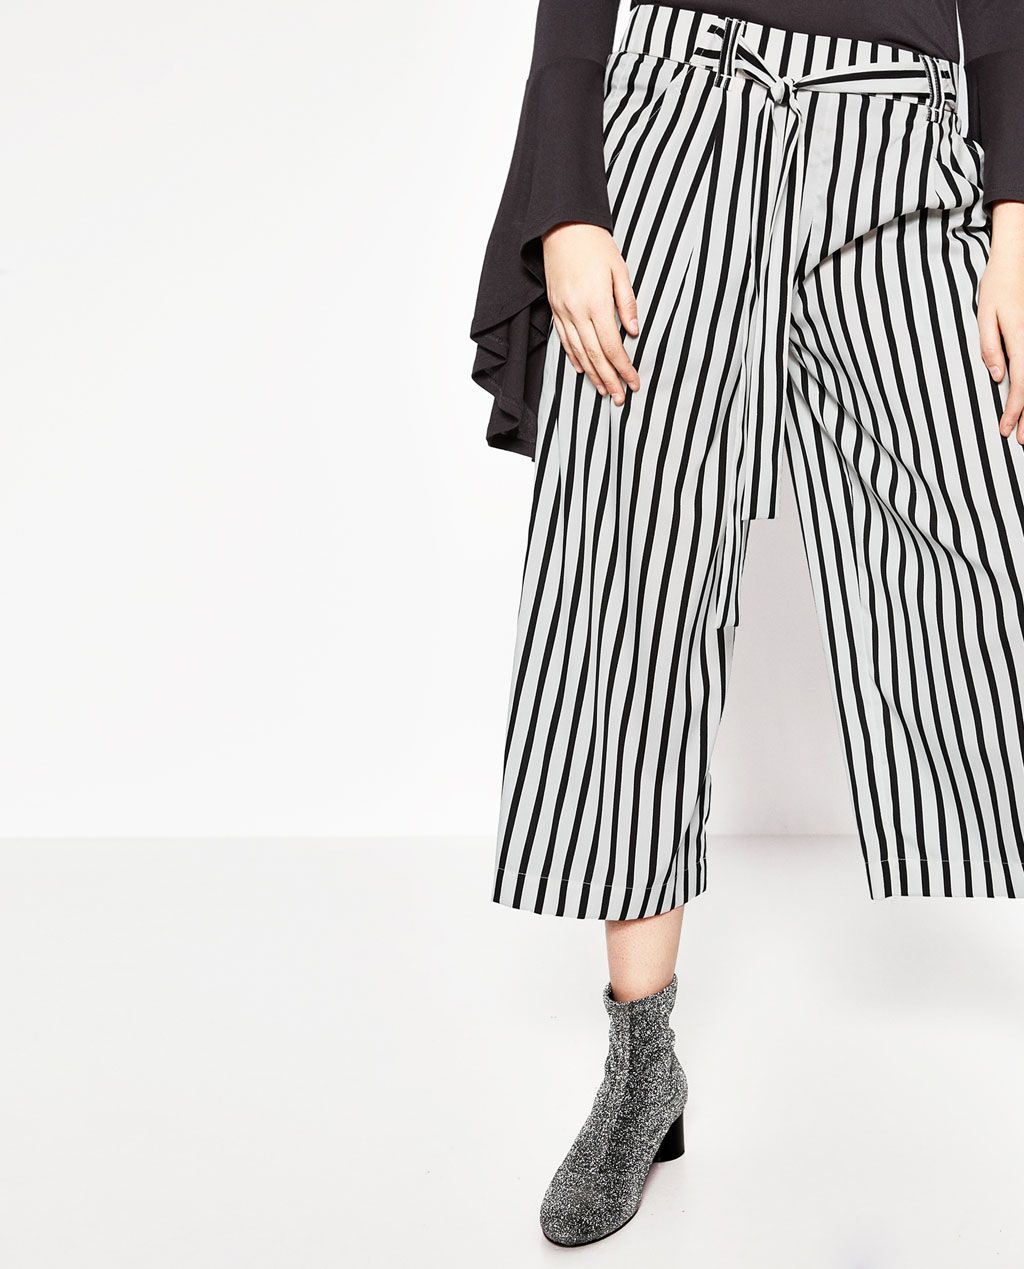 53ac23bba7ea CROPPED STRIPED FLOWING TROUSERS-Culottes-TROUSERS-WOMAN